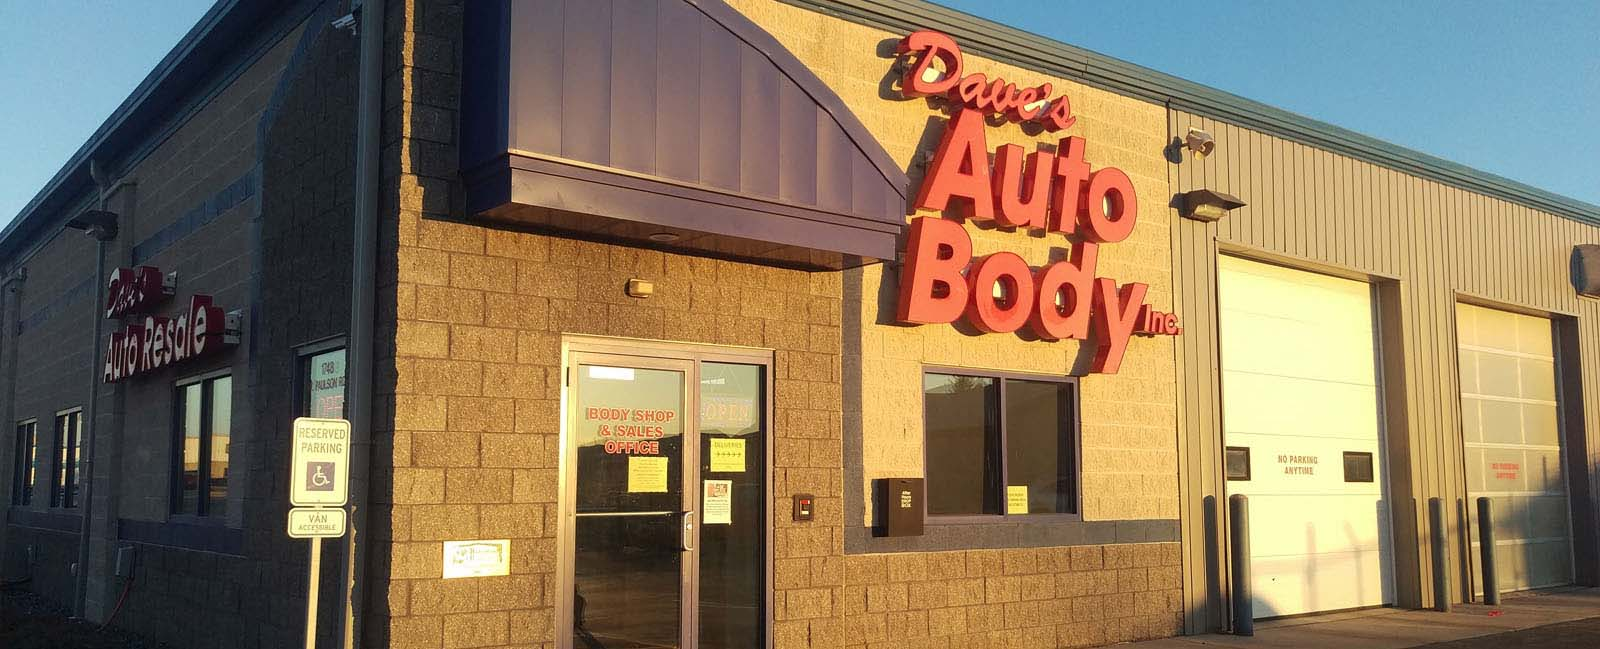 Dave's Auto Body Inc - auto repair shop in Green Bay